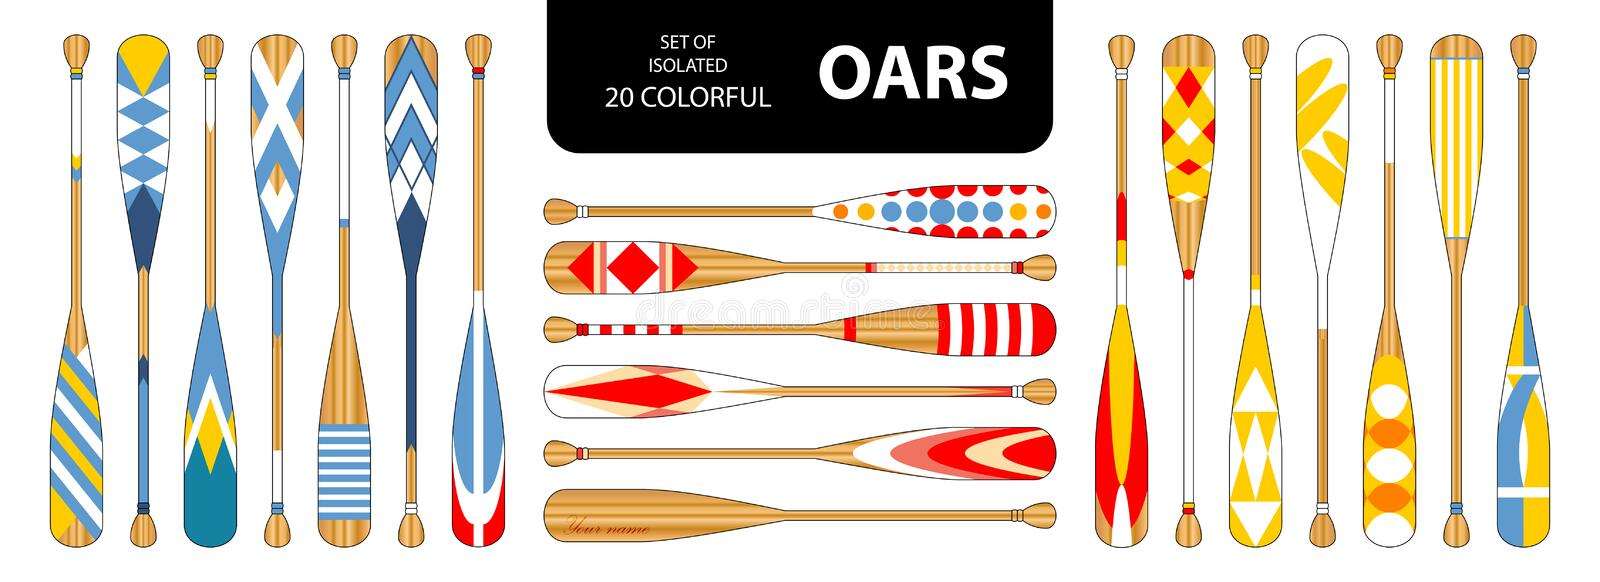 Set of isolated 20 cute colorful oars in red, blue, yellow tone. stock illustration